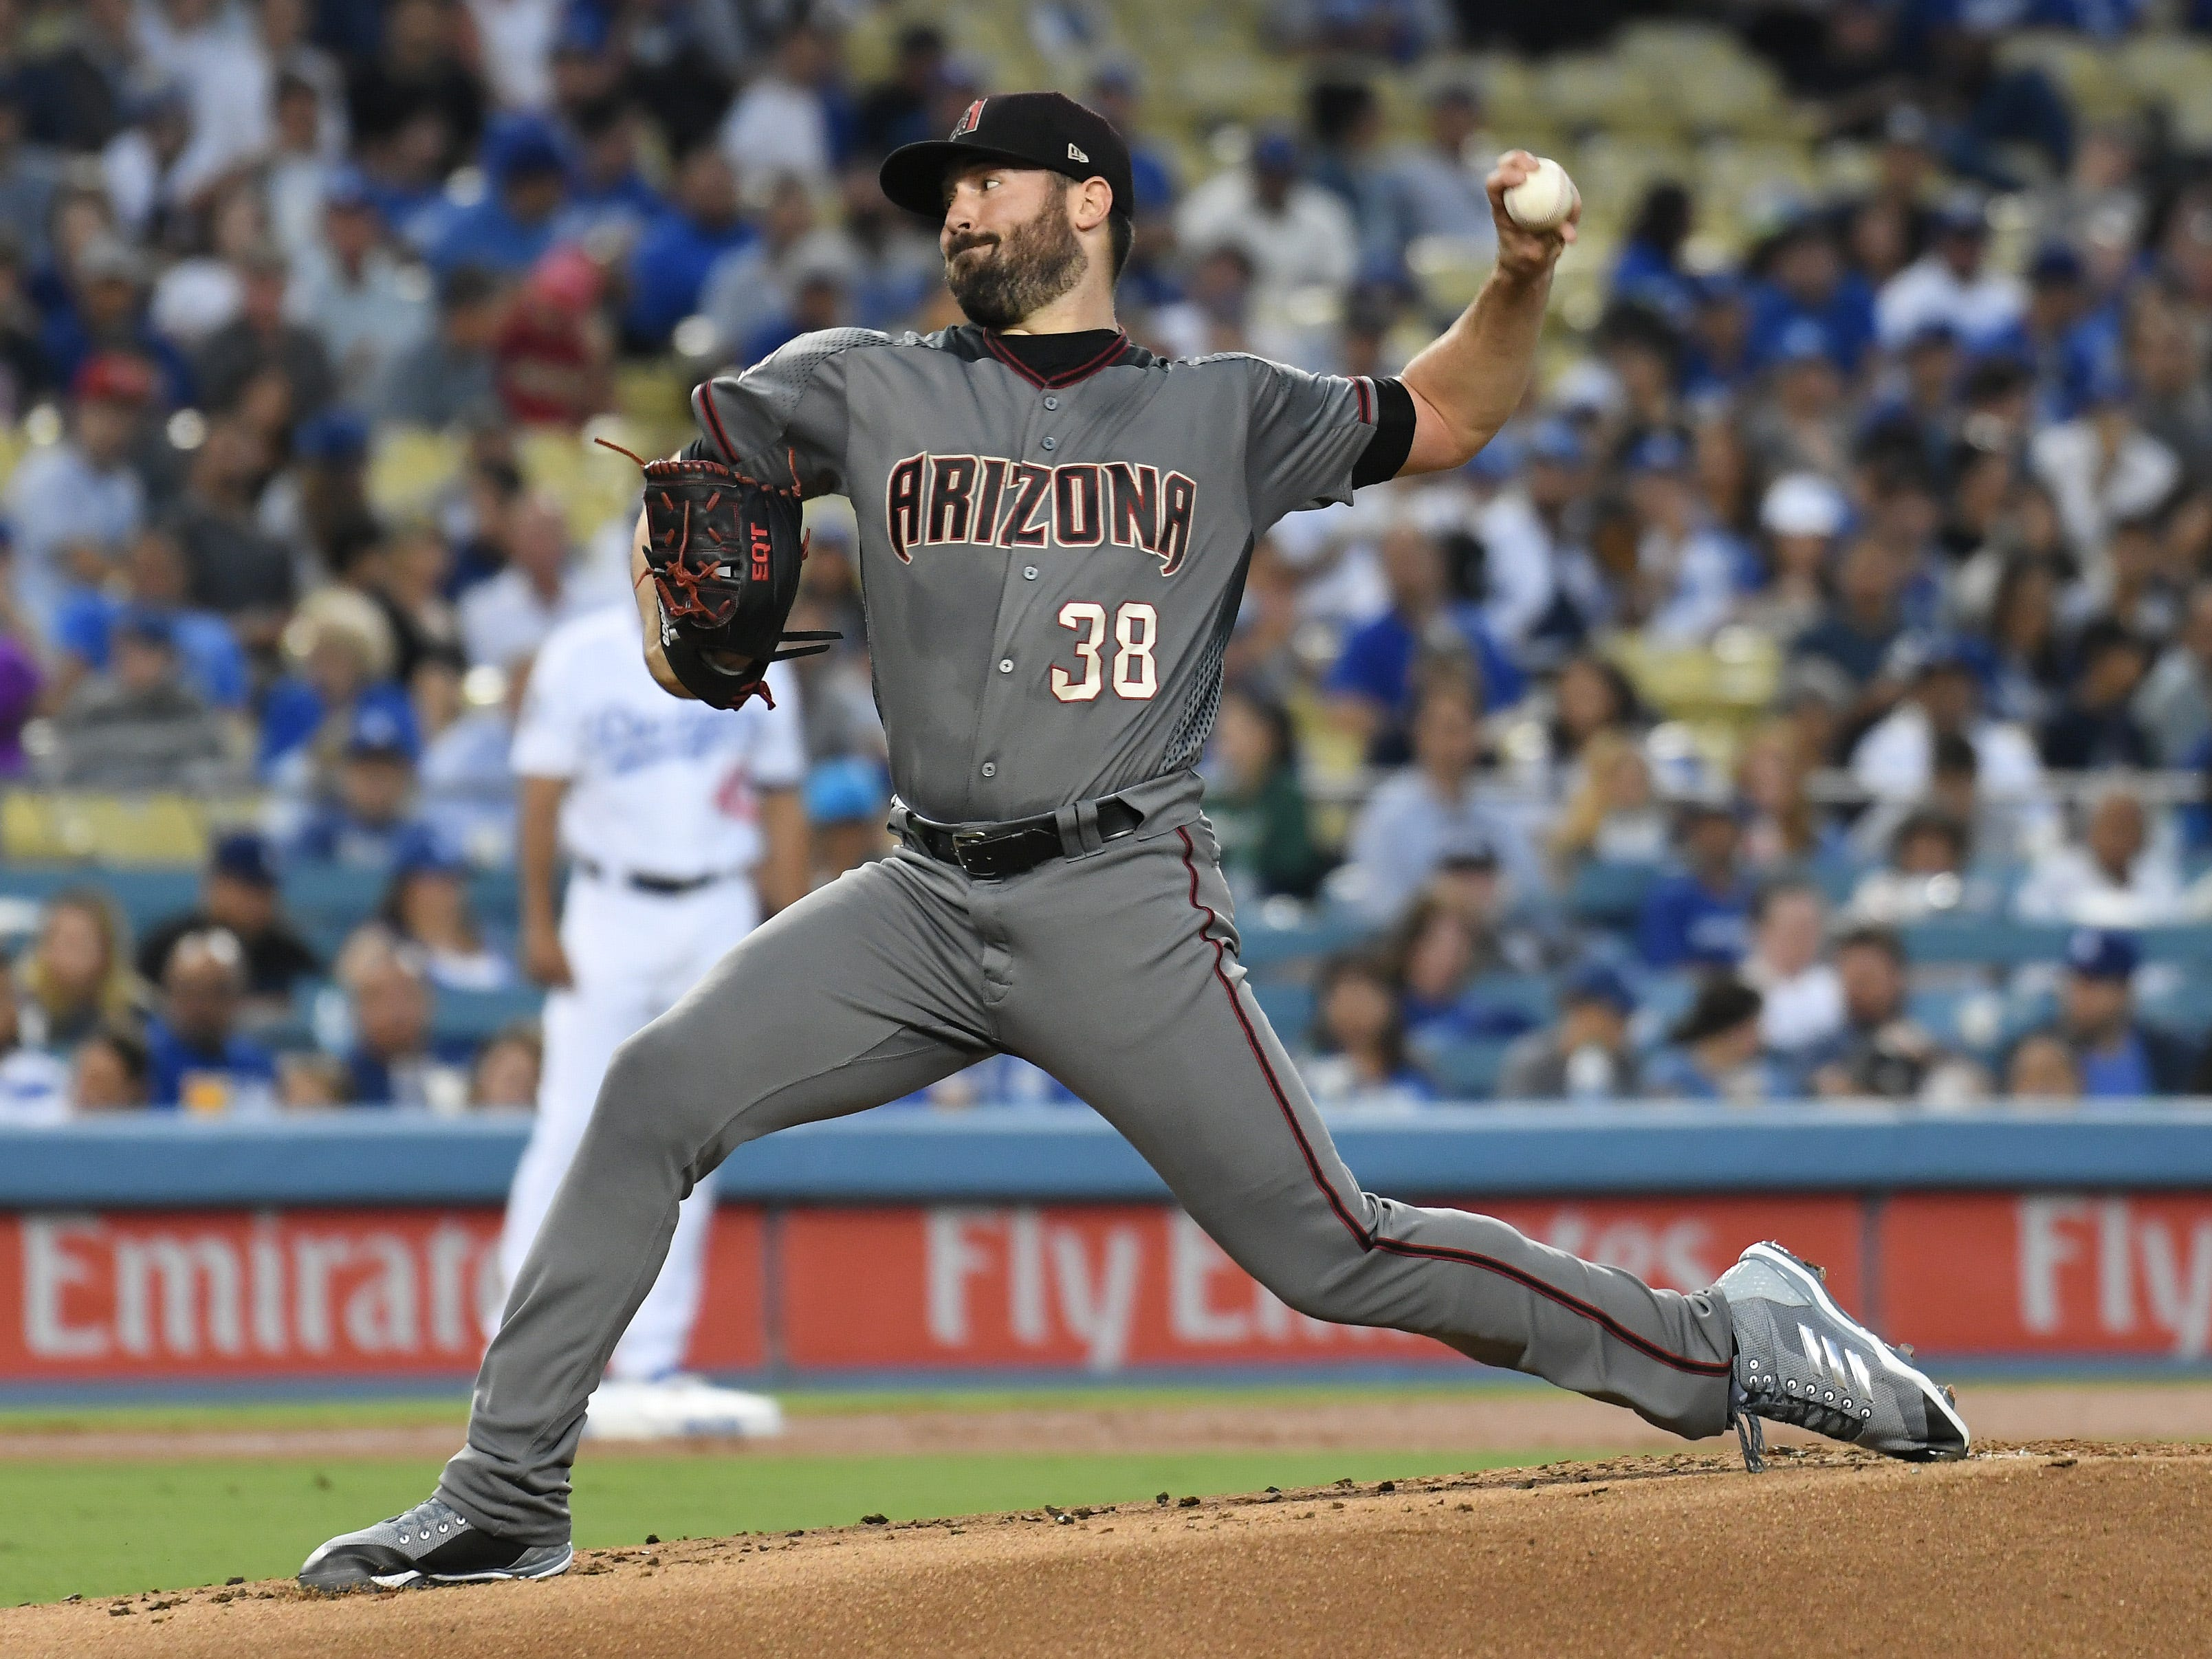 Aug 30, 2018; Los Angeles, CA, USA; Arizona Diamondbacks starting pitcher Robbie Ray (38) pitches against the Los Angeles Dodgers in the first inning at Dodger Stadium. Mandatory Credit: Richard Mackson-USA TODAY Sports